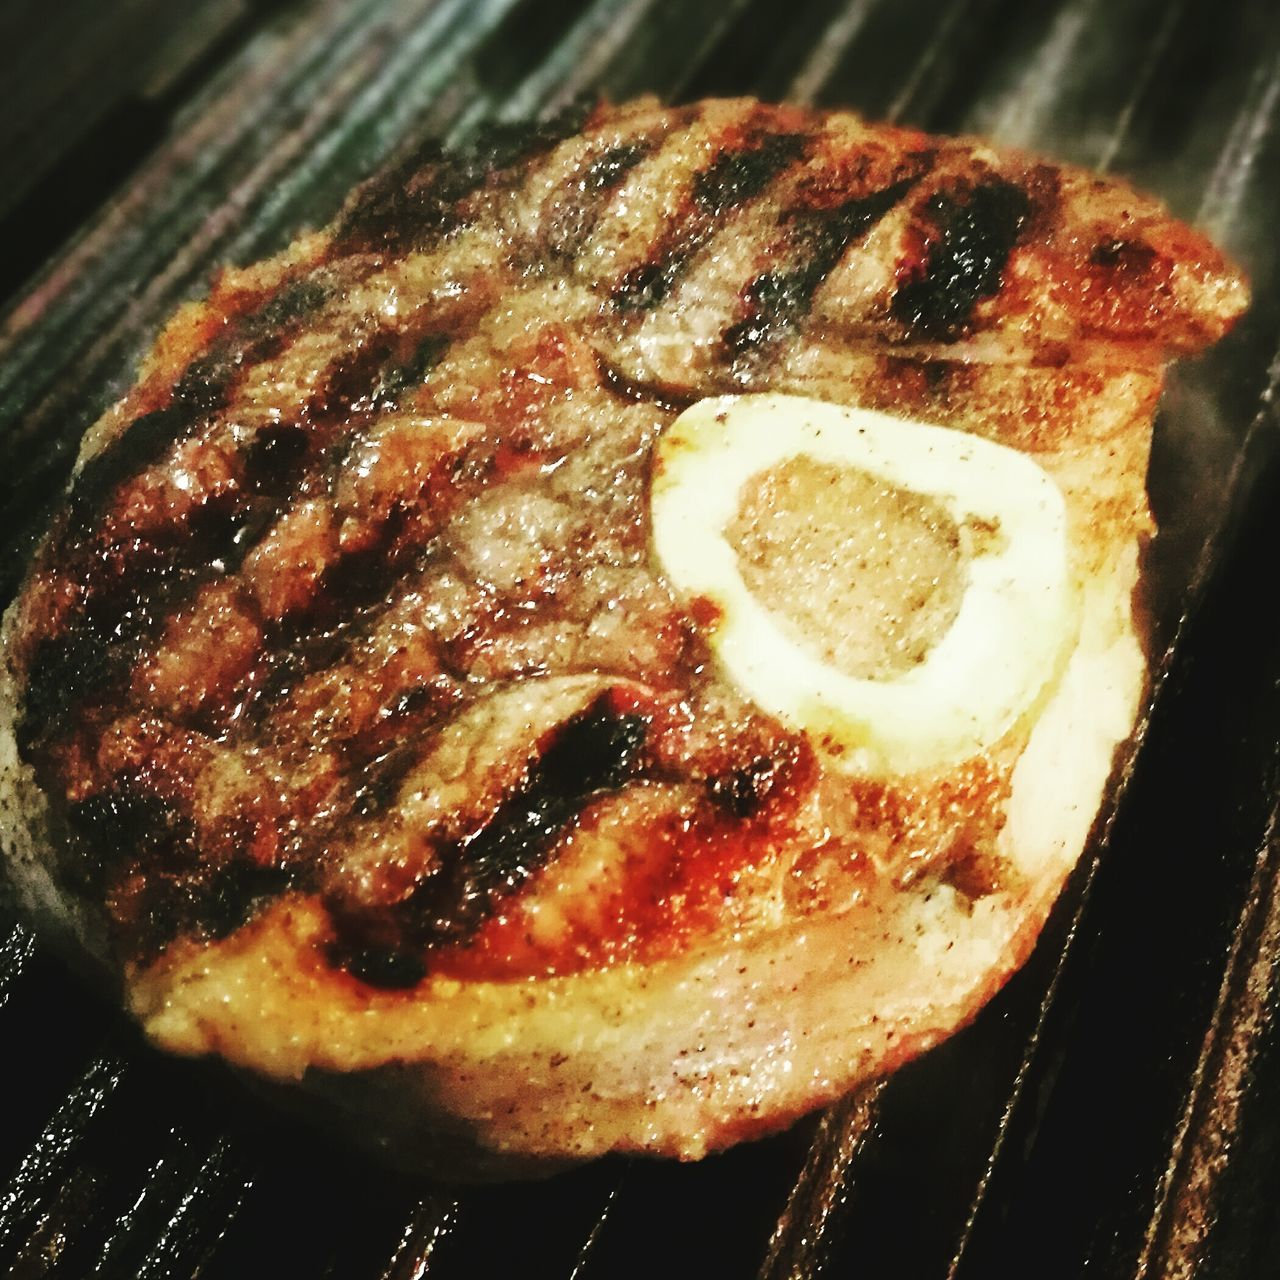 Beef Grill Meat Red Meat Healthy Eating Freshness Food And Drink Food HuaweiP9